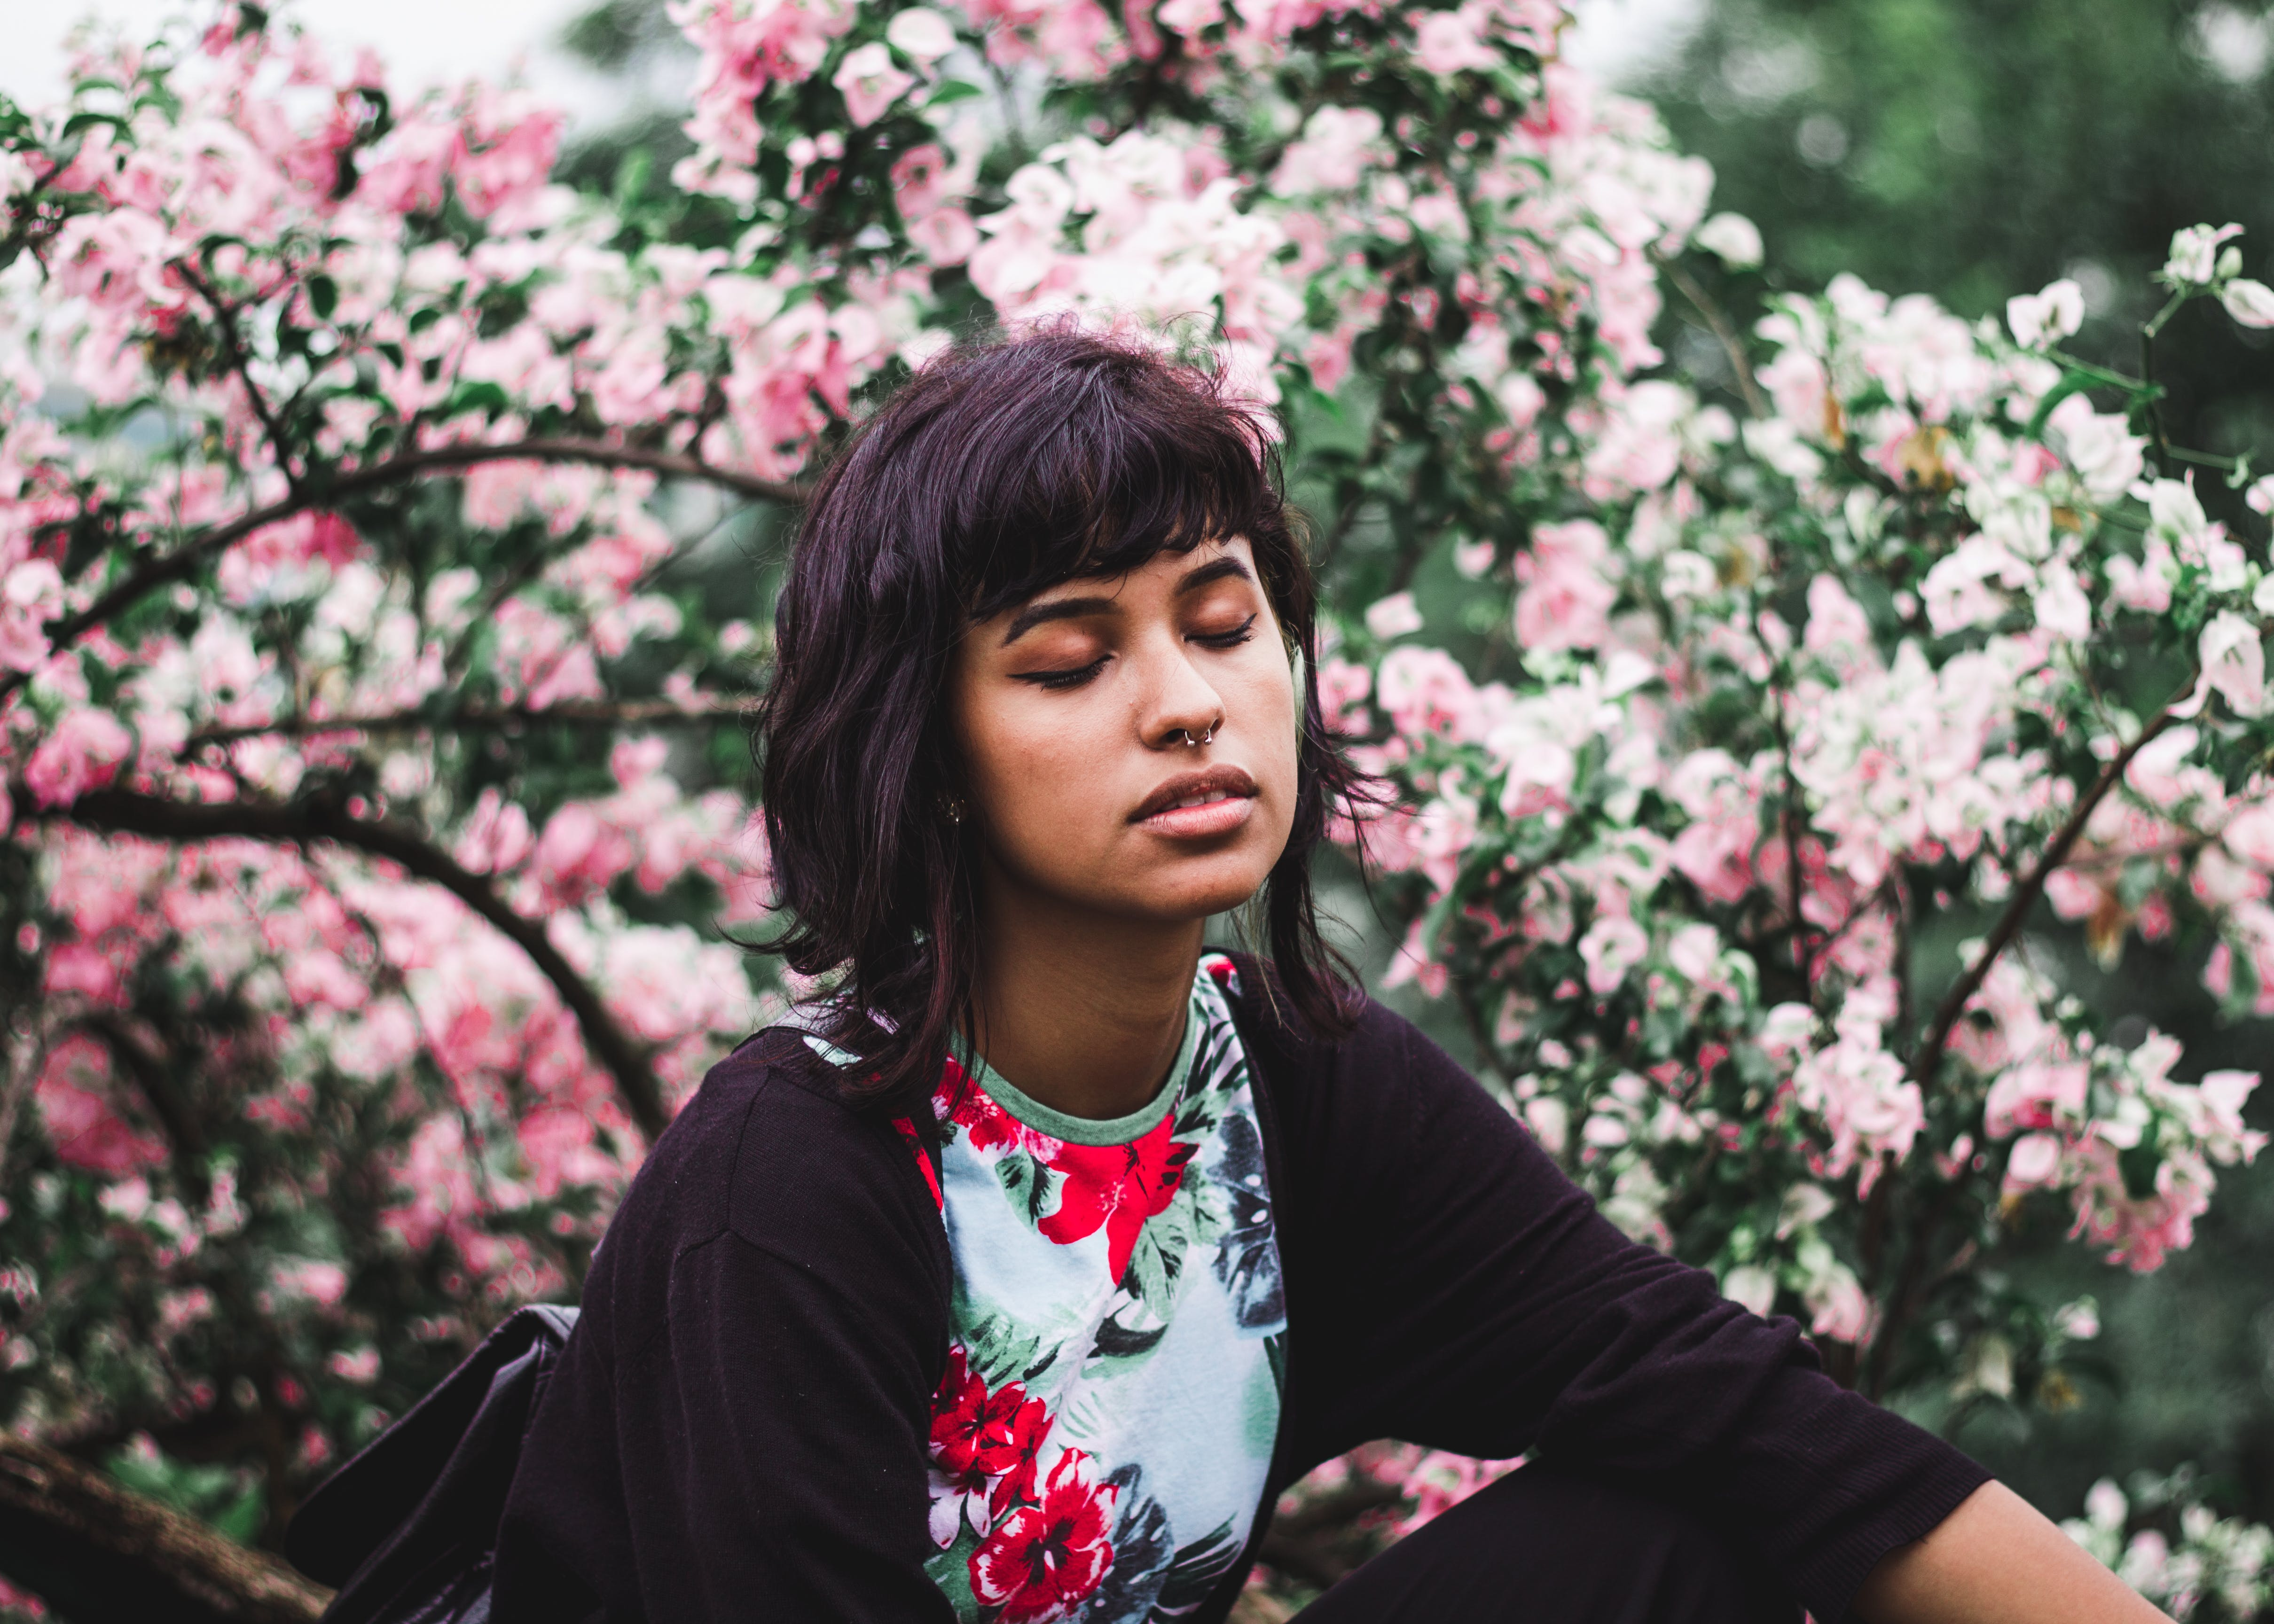 Woman Wearing White and Red Floral Crew-neck Shirt Near Pink Petaled Plant